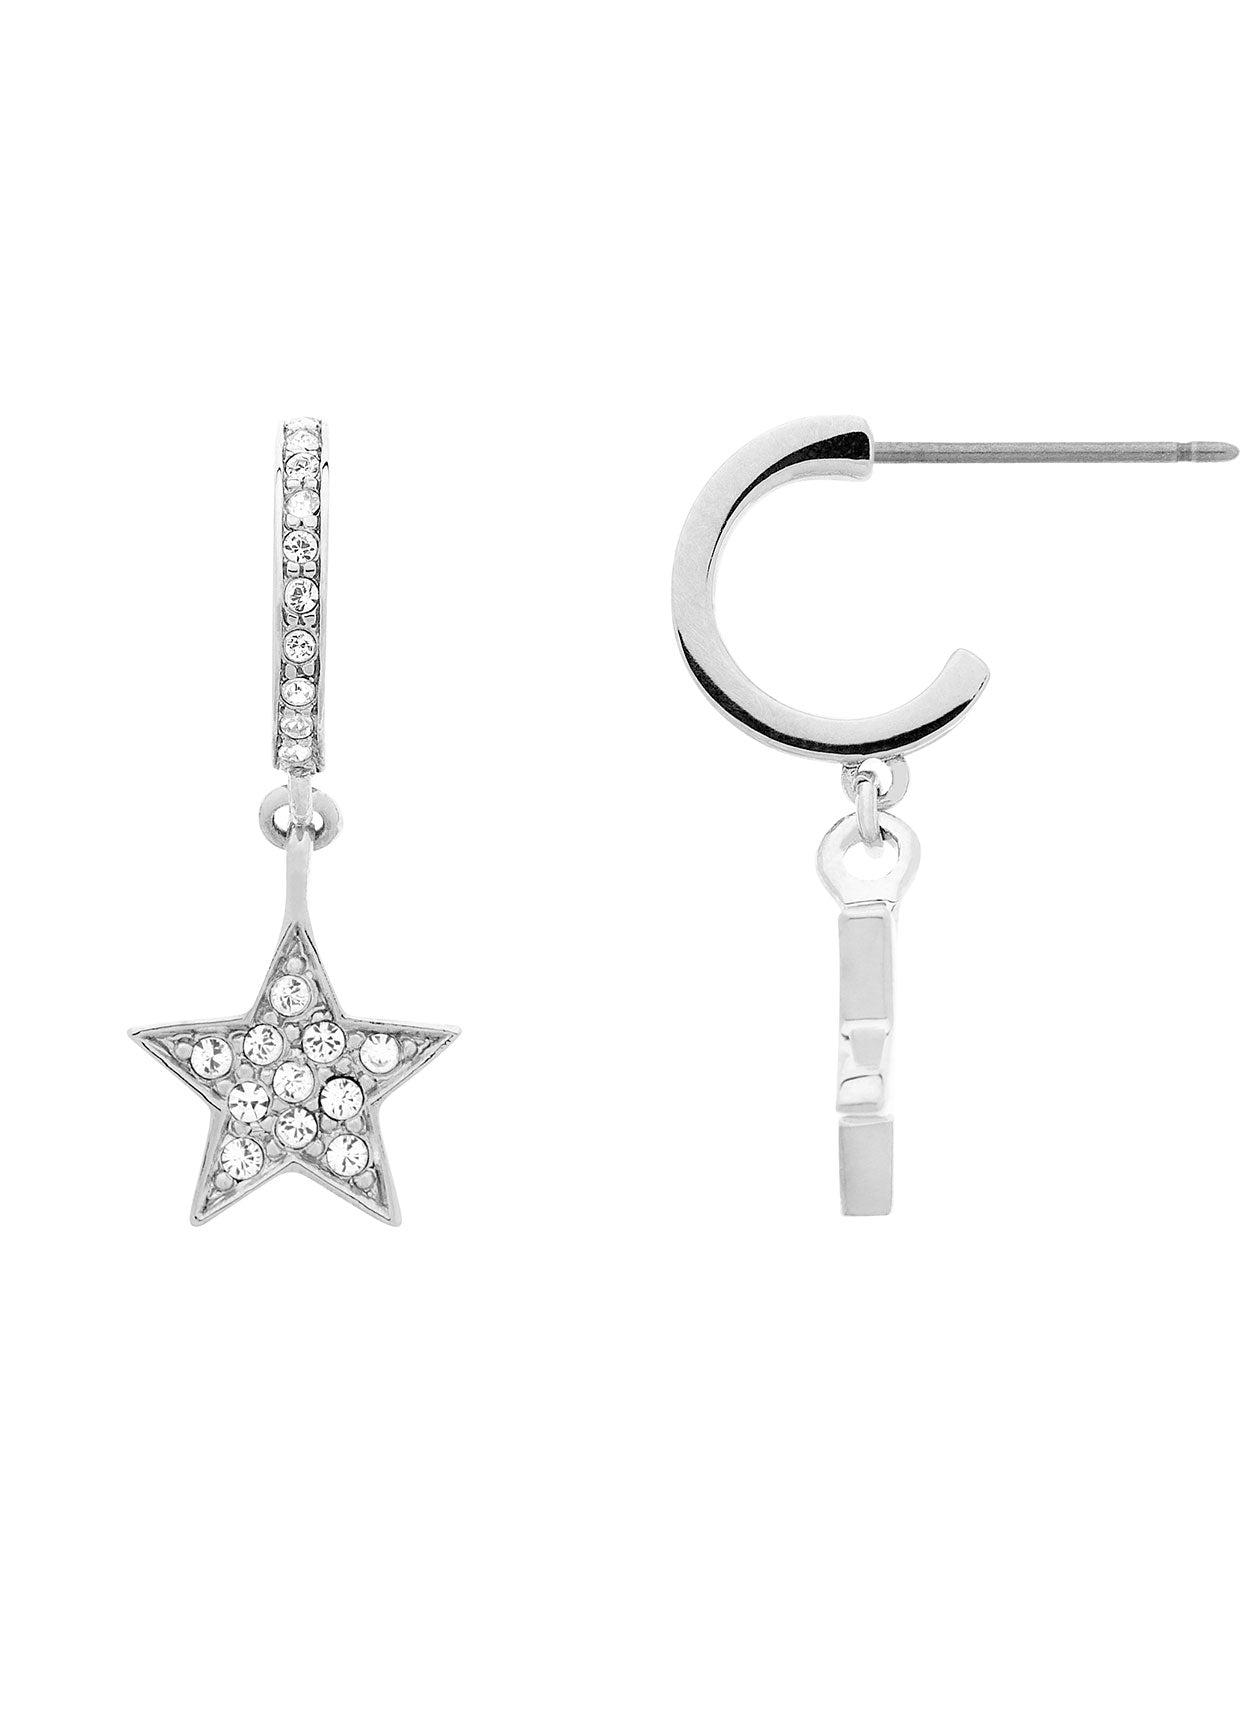 Rhodium Swarovski Star/Hoop Earrings